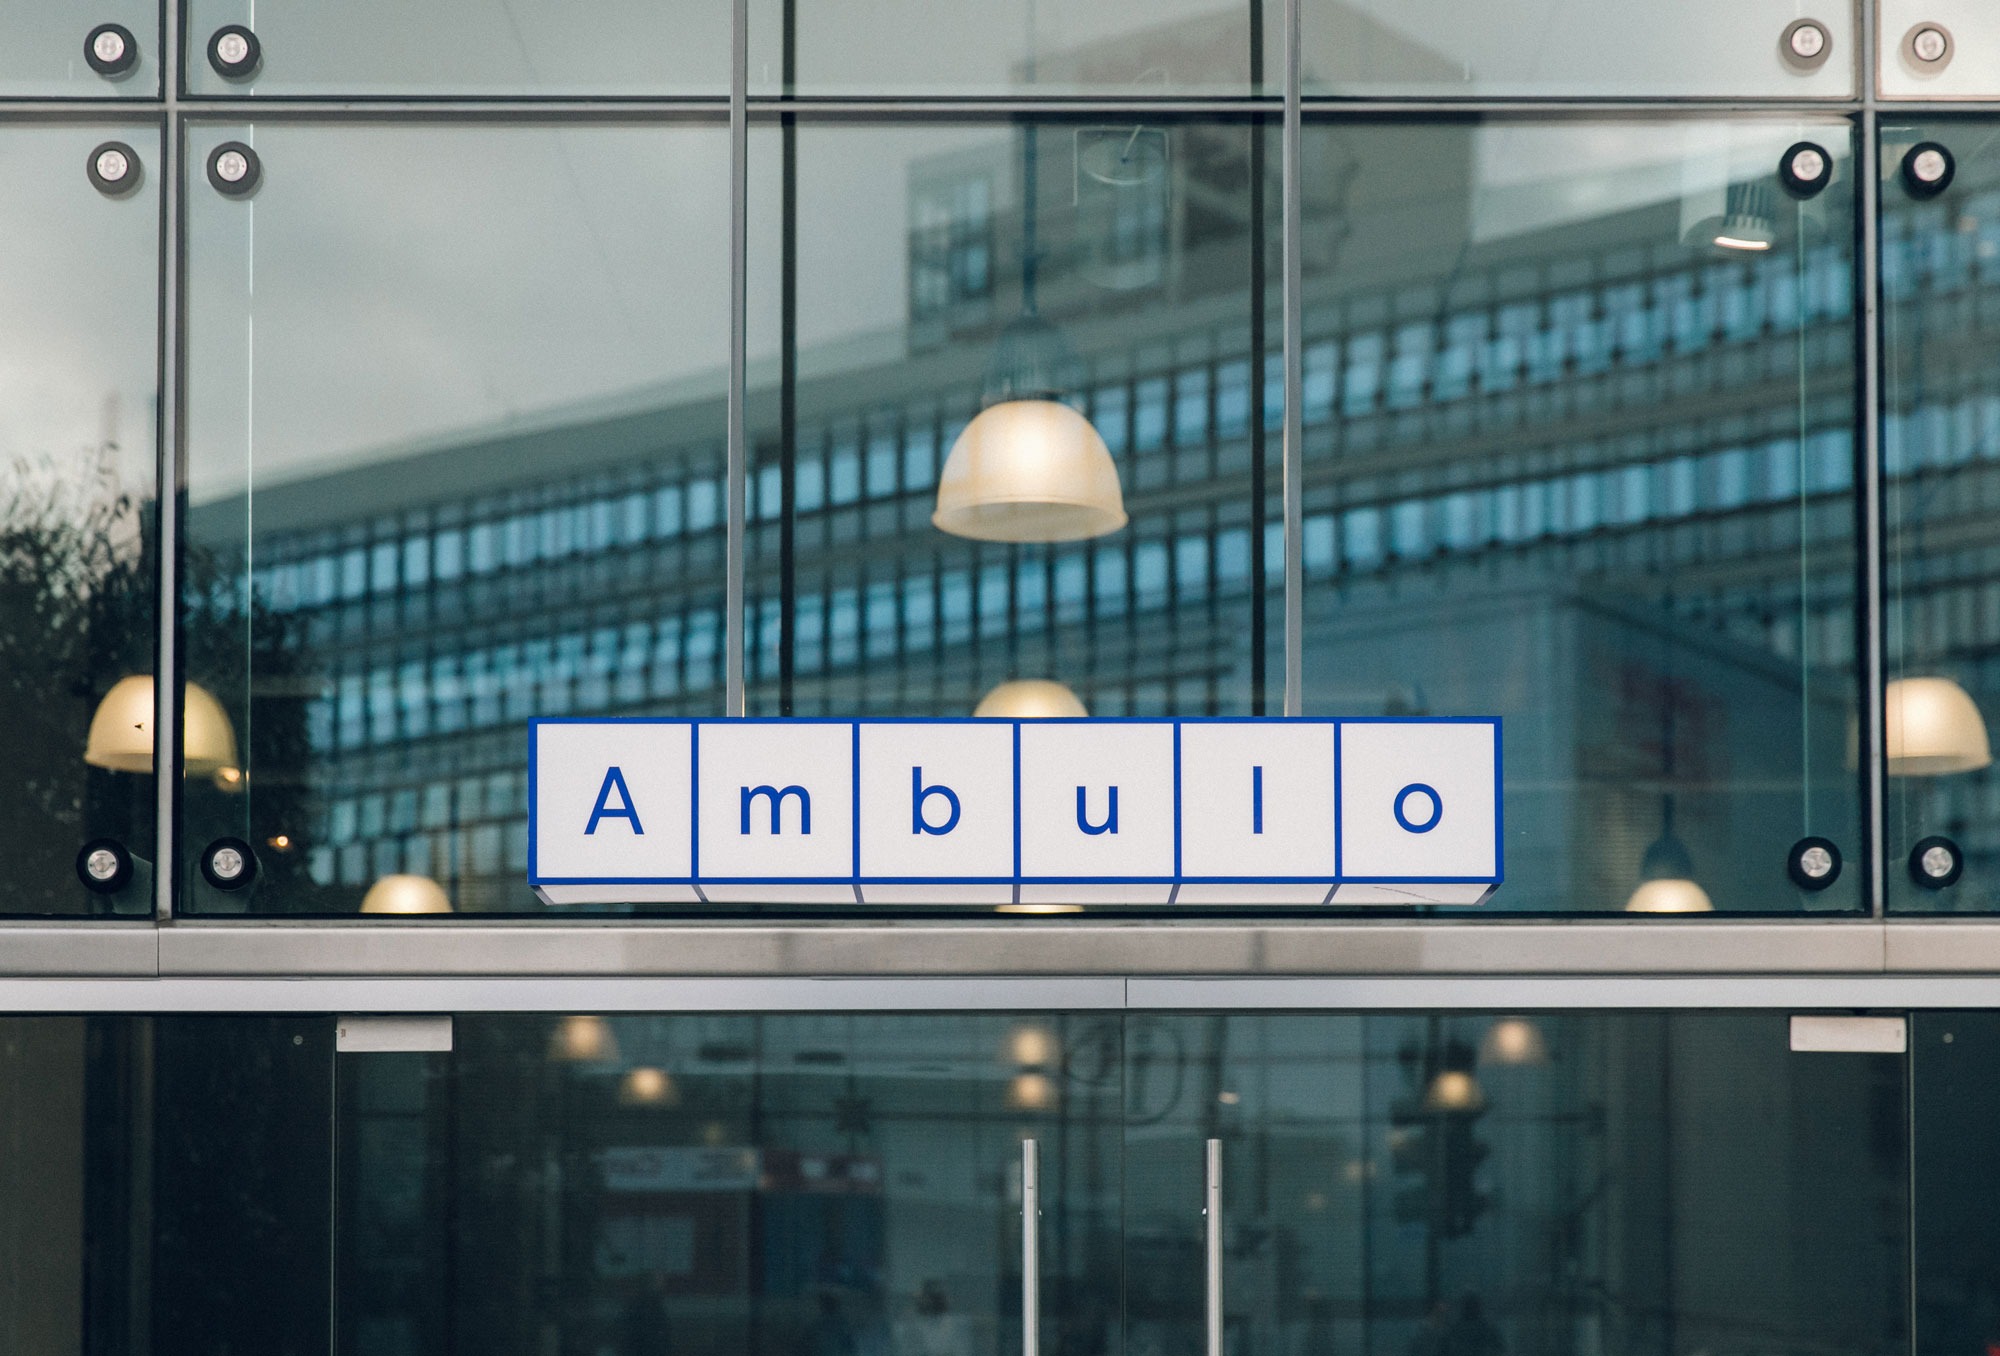 Ambulo sign photo